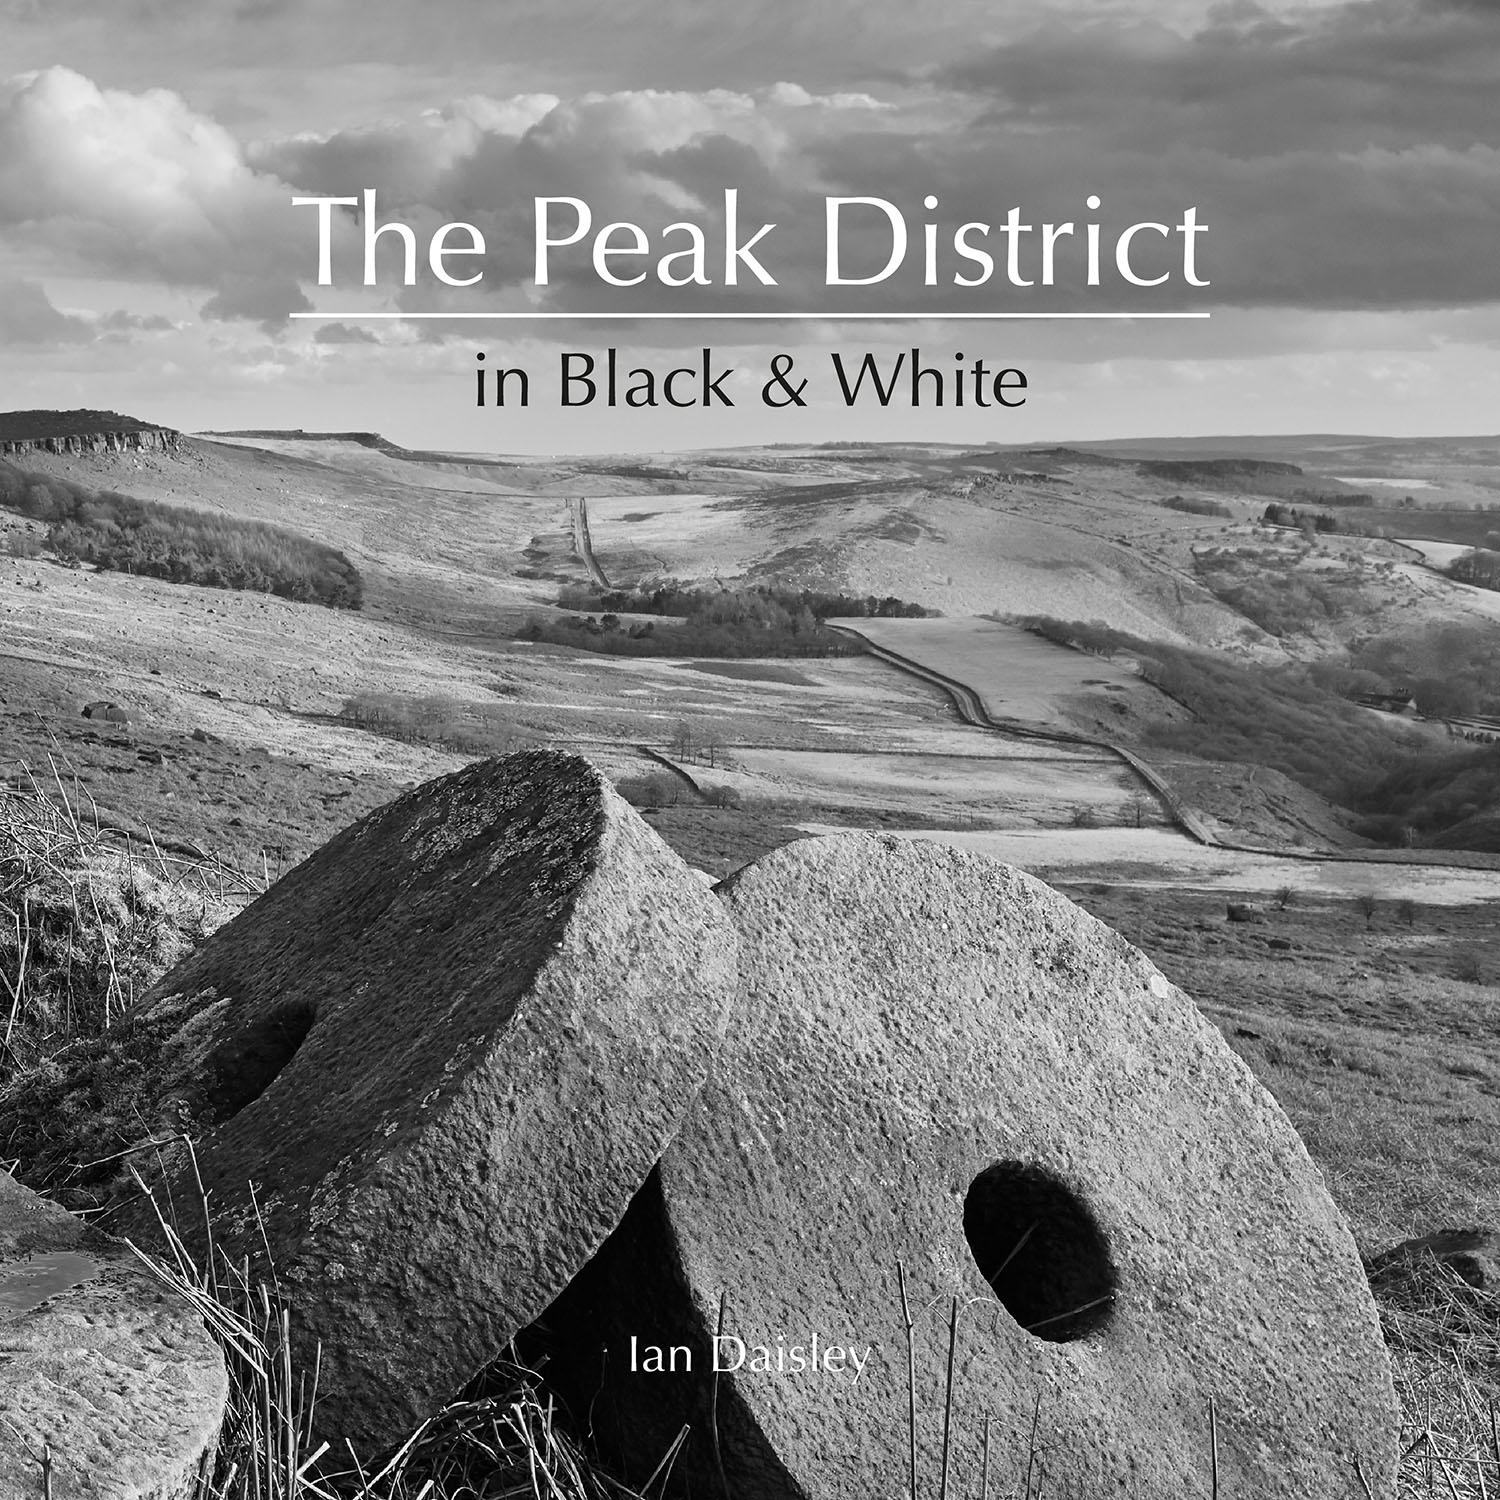 The Peak District in Black and White, by Ian Daisley